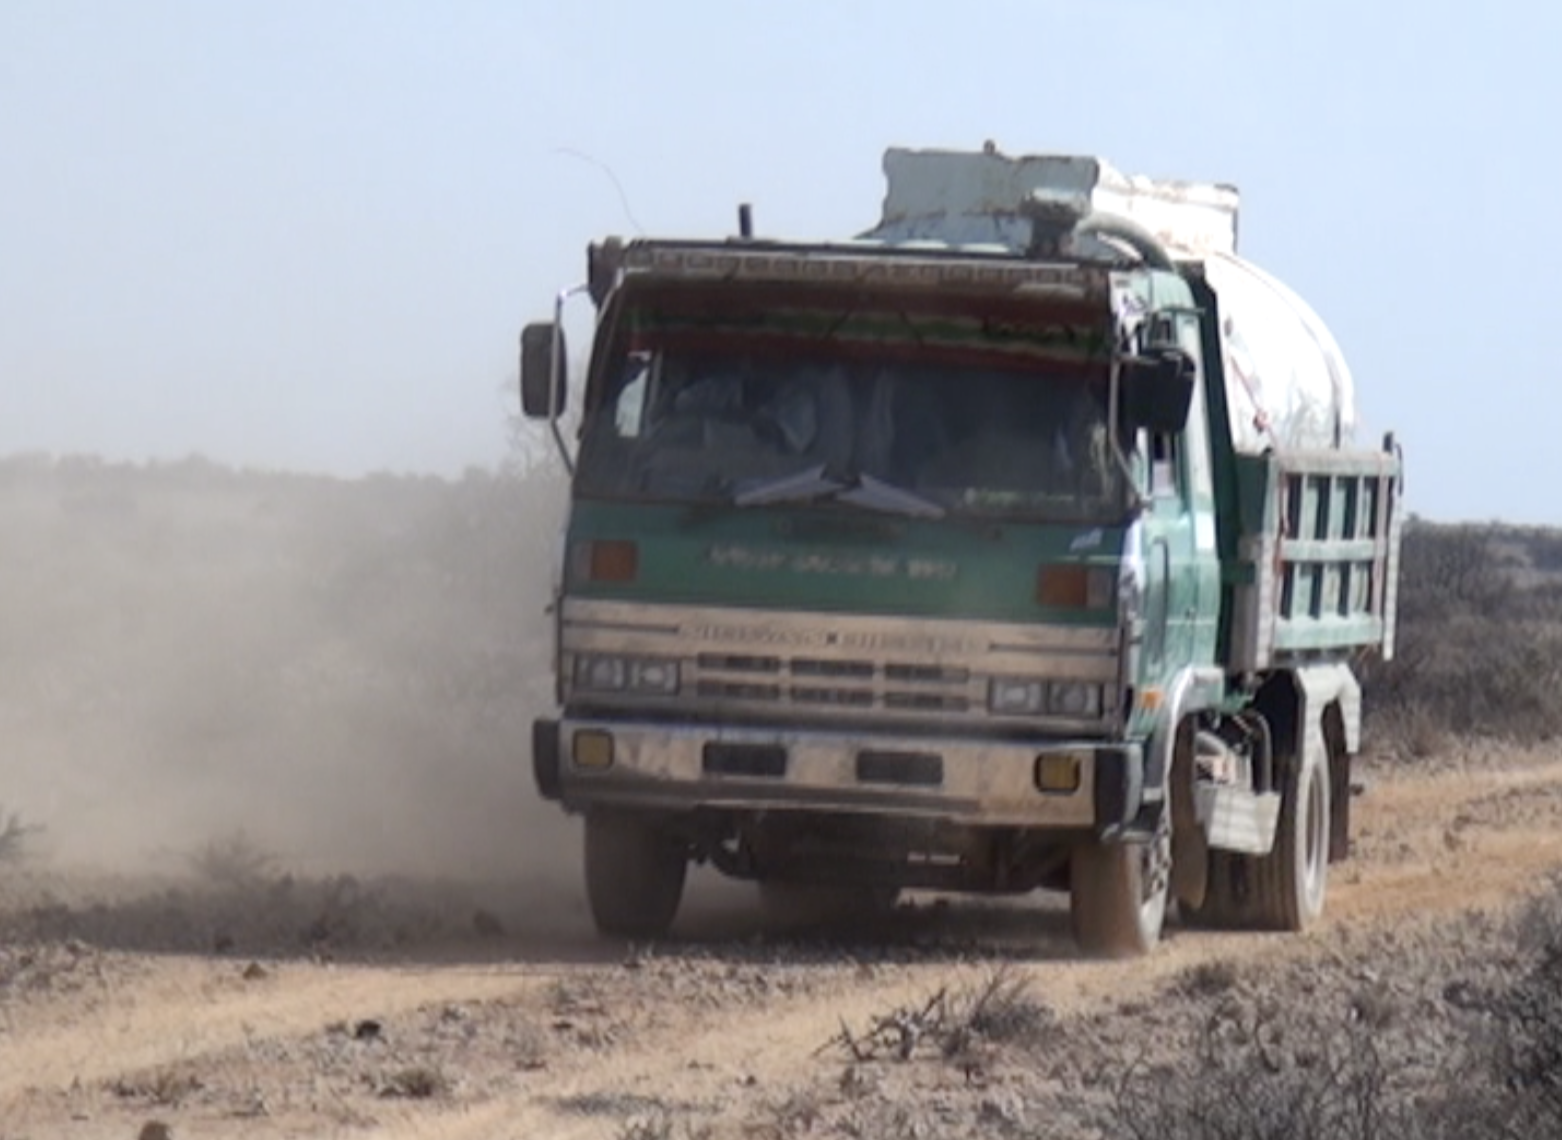 A tanker truck leaves to deliver water to a village